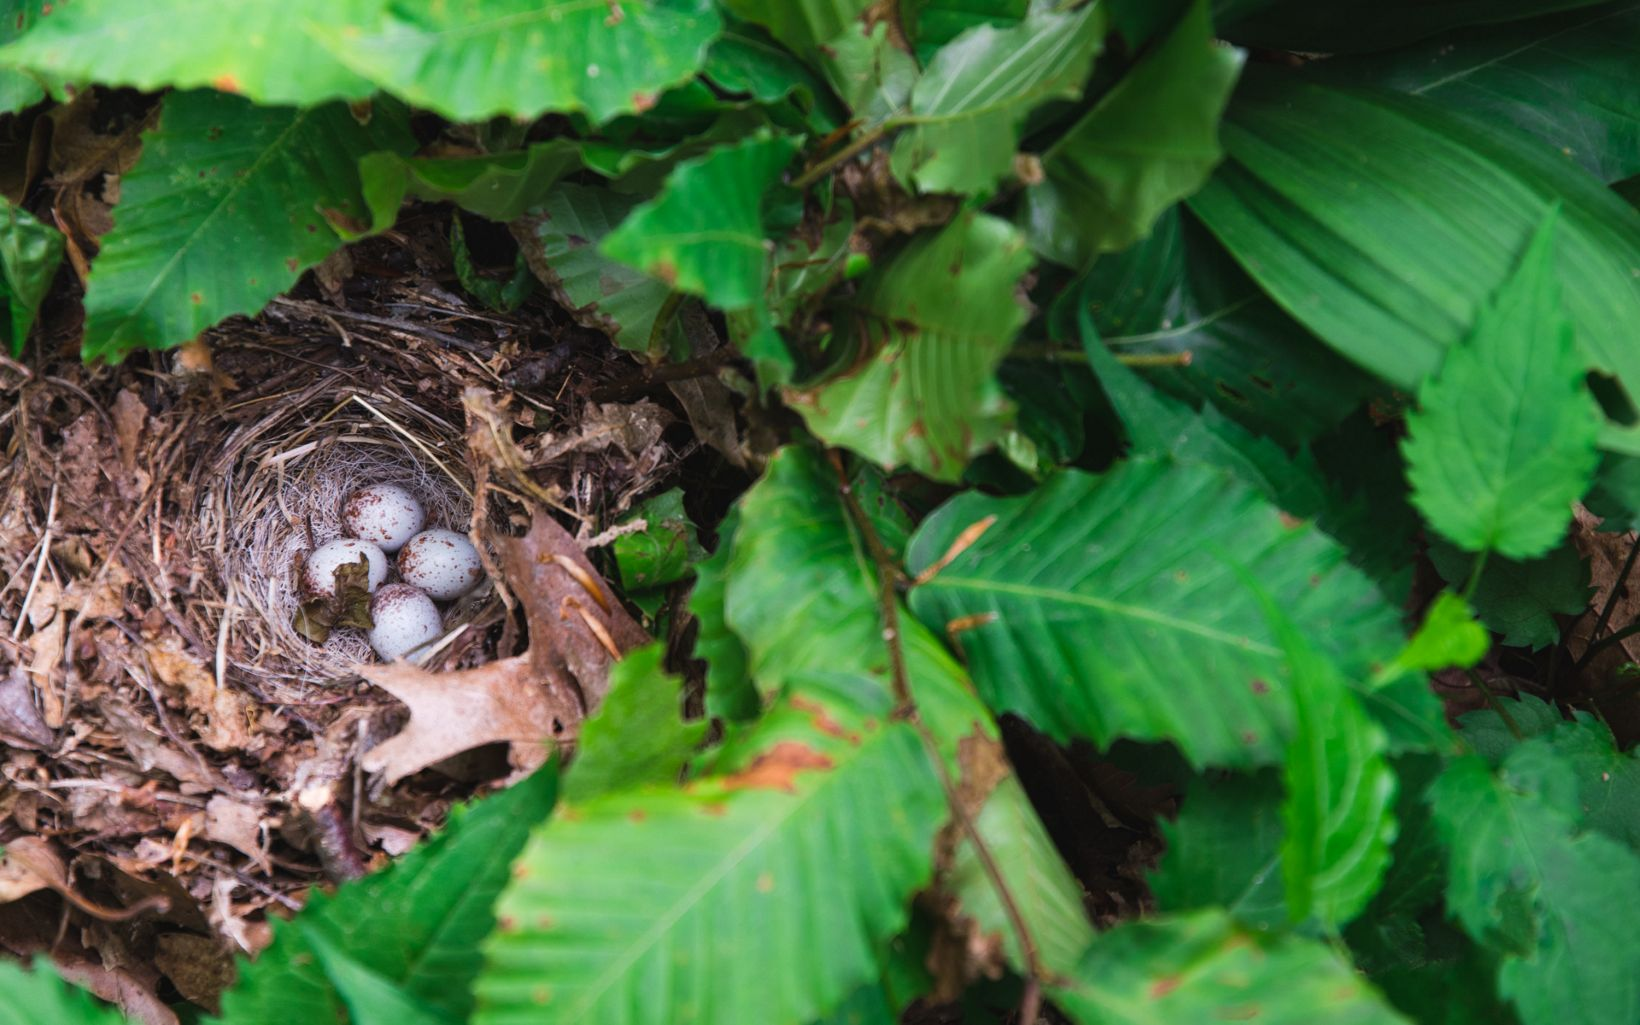 Nest of four eggs nestled into the ground under a fern.